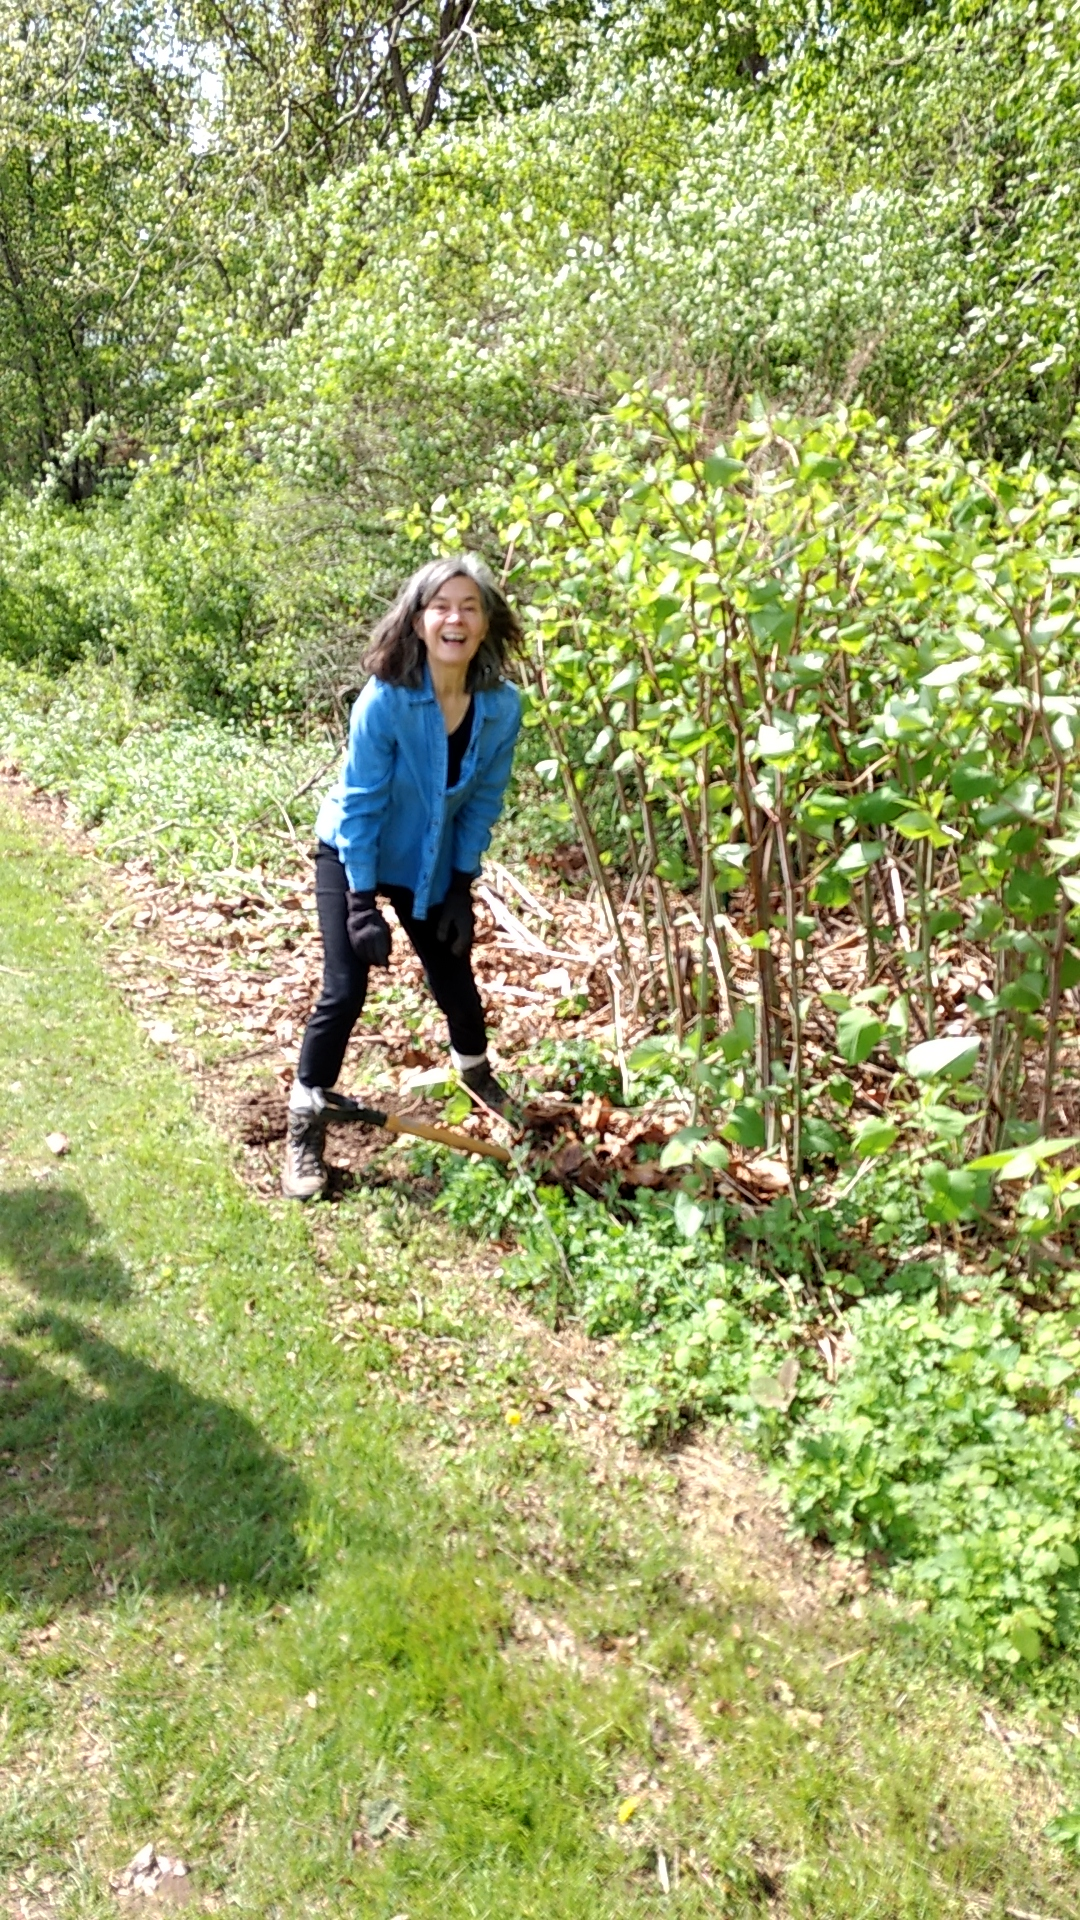 Susan Mayr digging out knotweed - image by Dan Snider